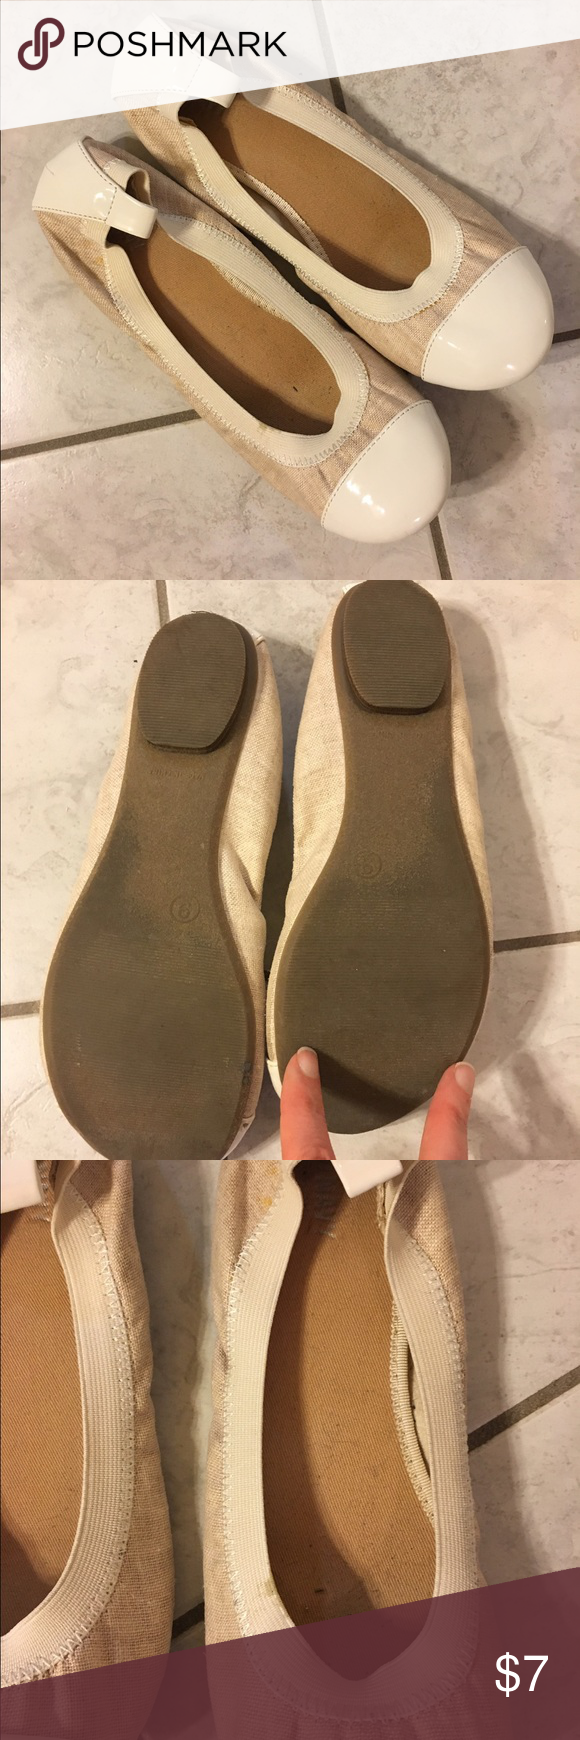 Old navy tan flats Size 9 old navy tan flats. Have elastic around the top of the foot. Has a spot on the elastic shown in the picture. In good used condition! Old Navy Shoes Flats & Loafers